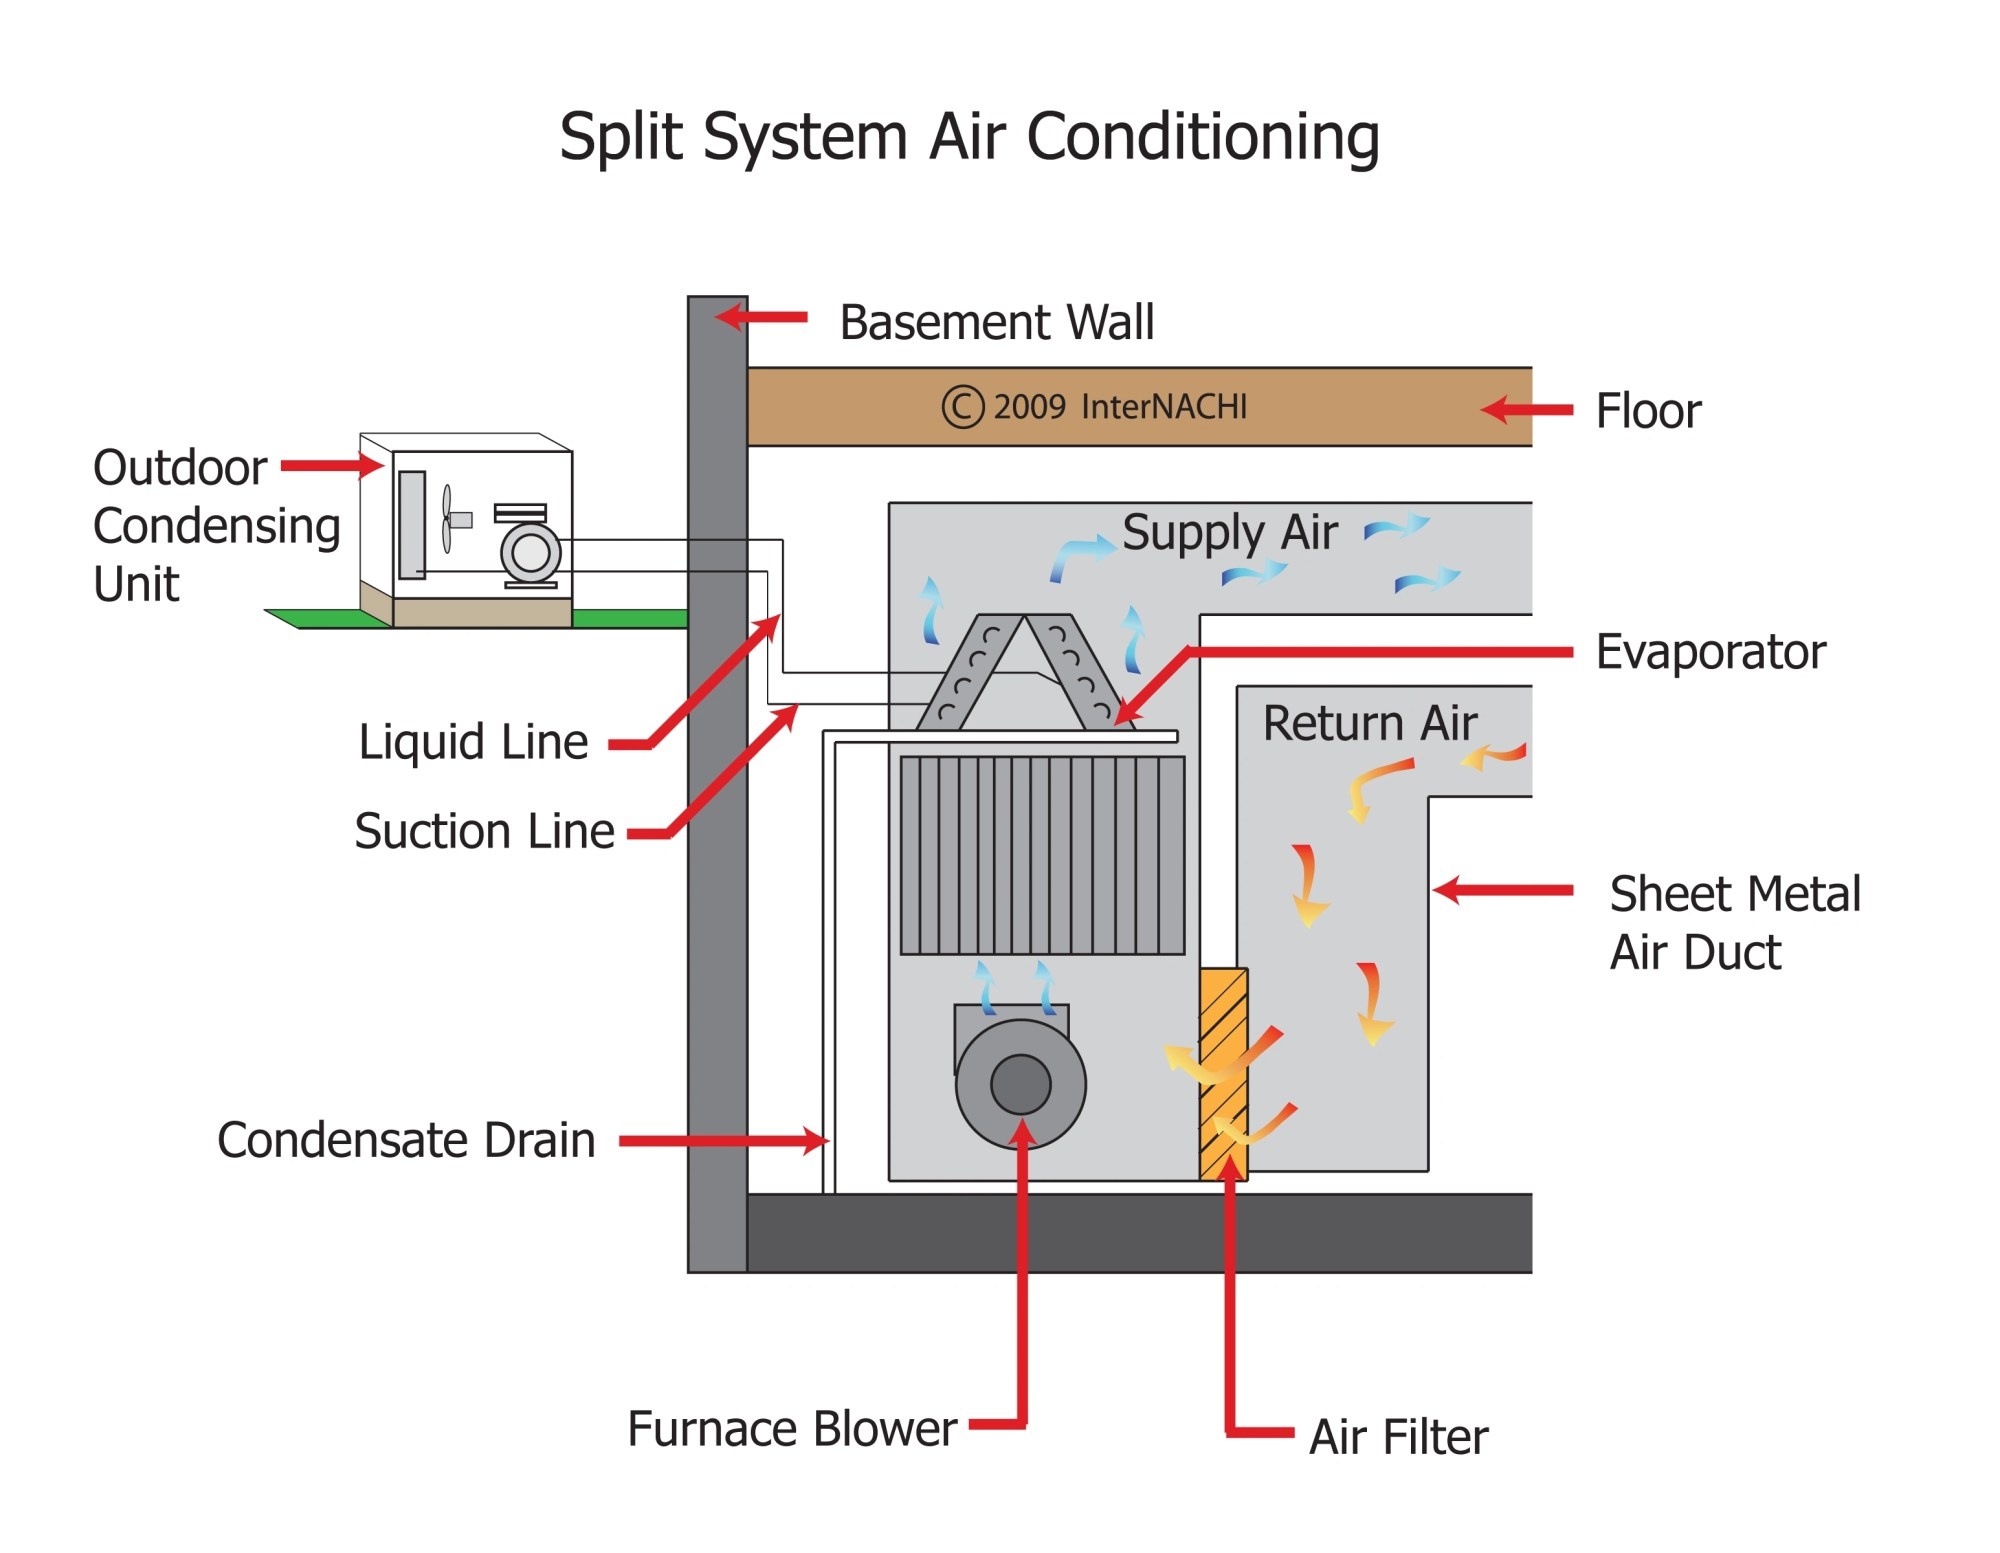 hight resolution of internachi inspection graphics library hvac cooling split system air conditioning jpg